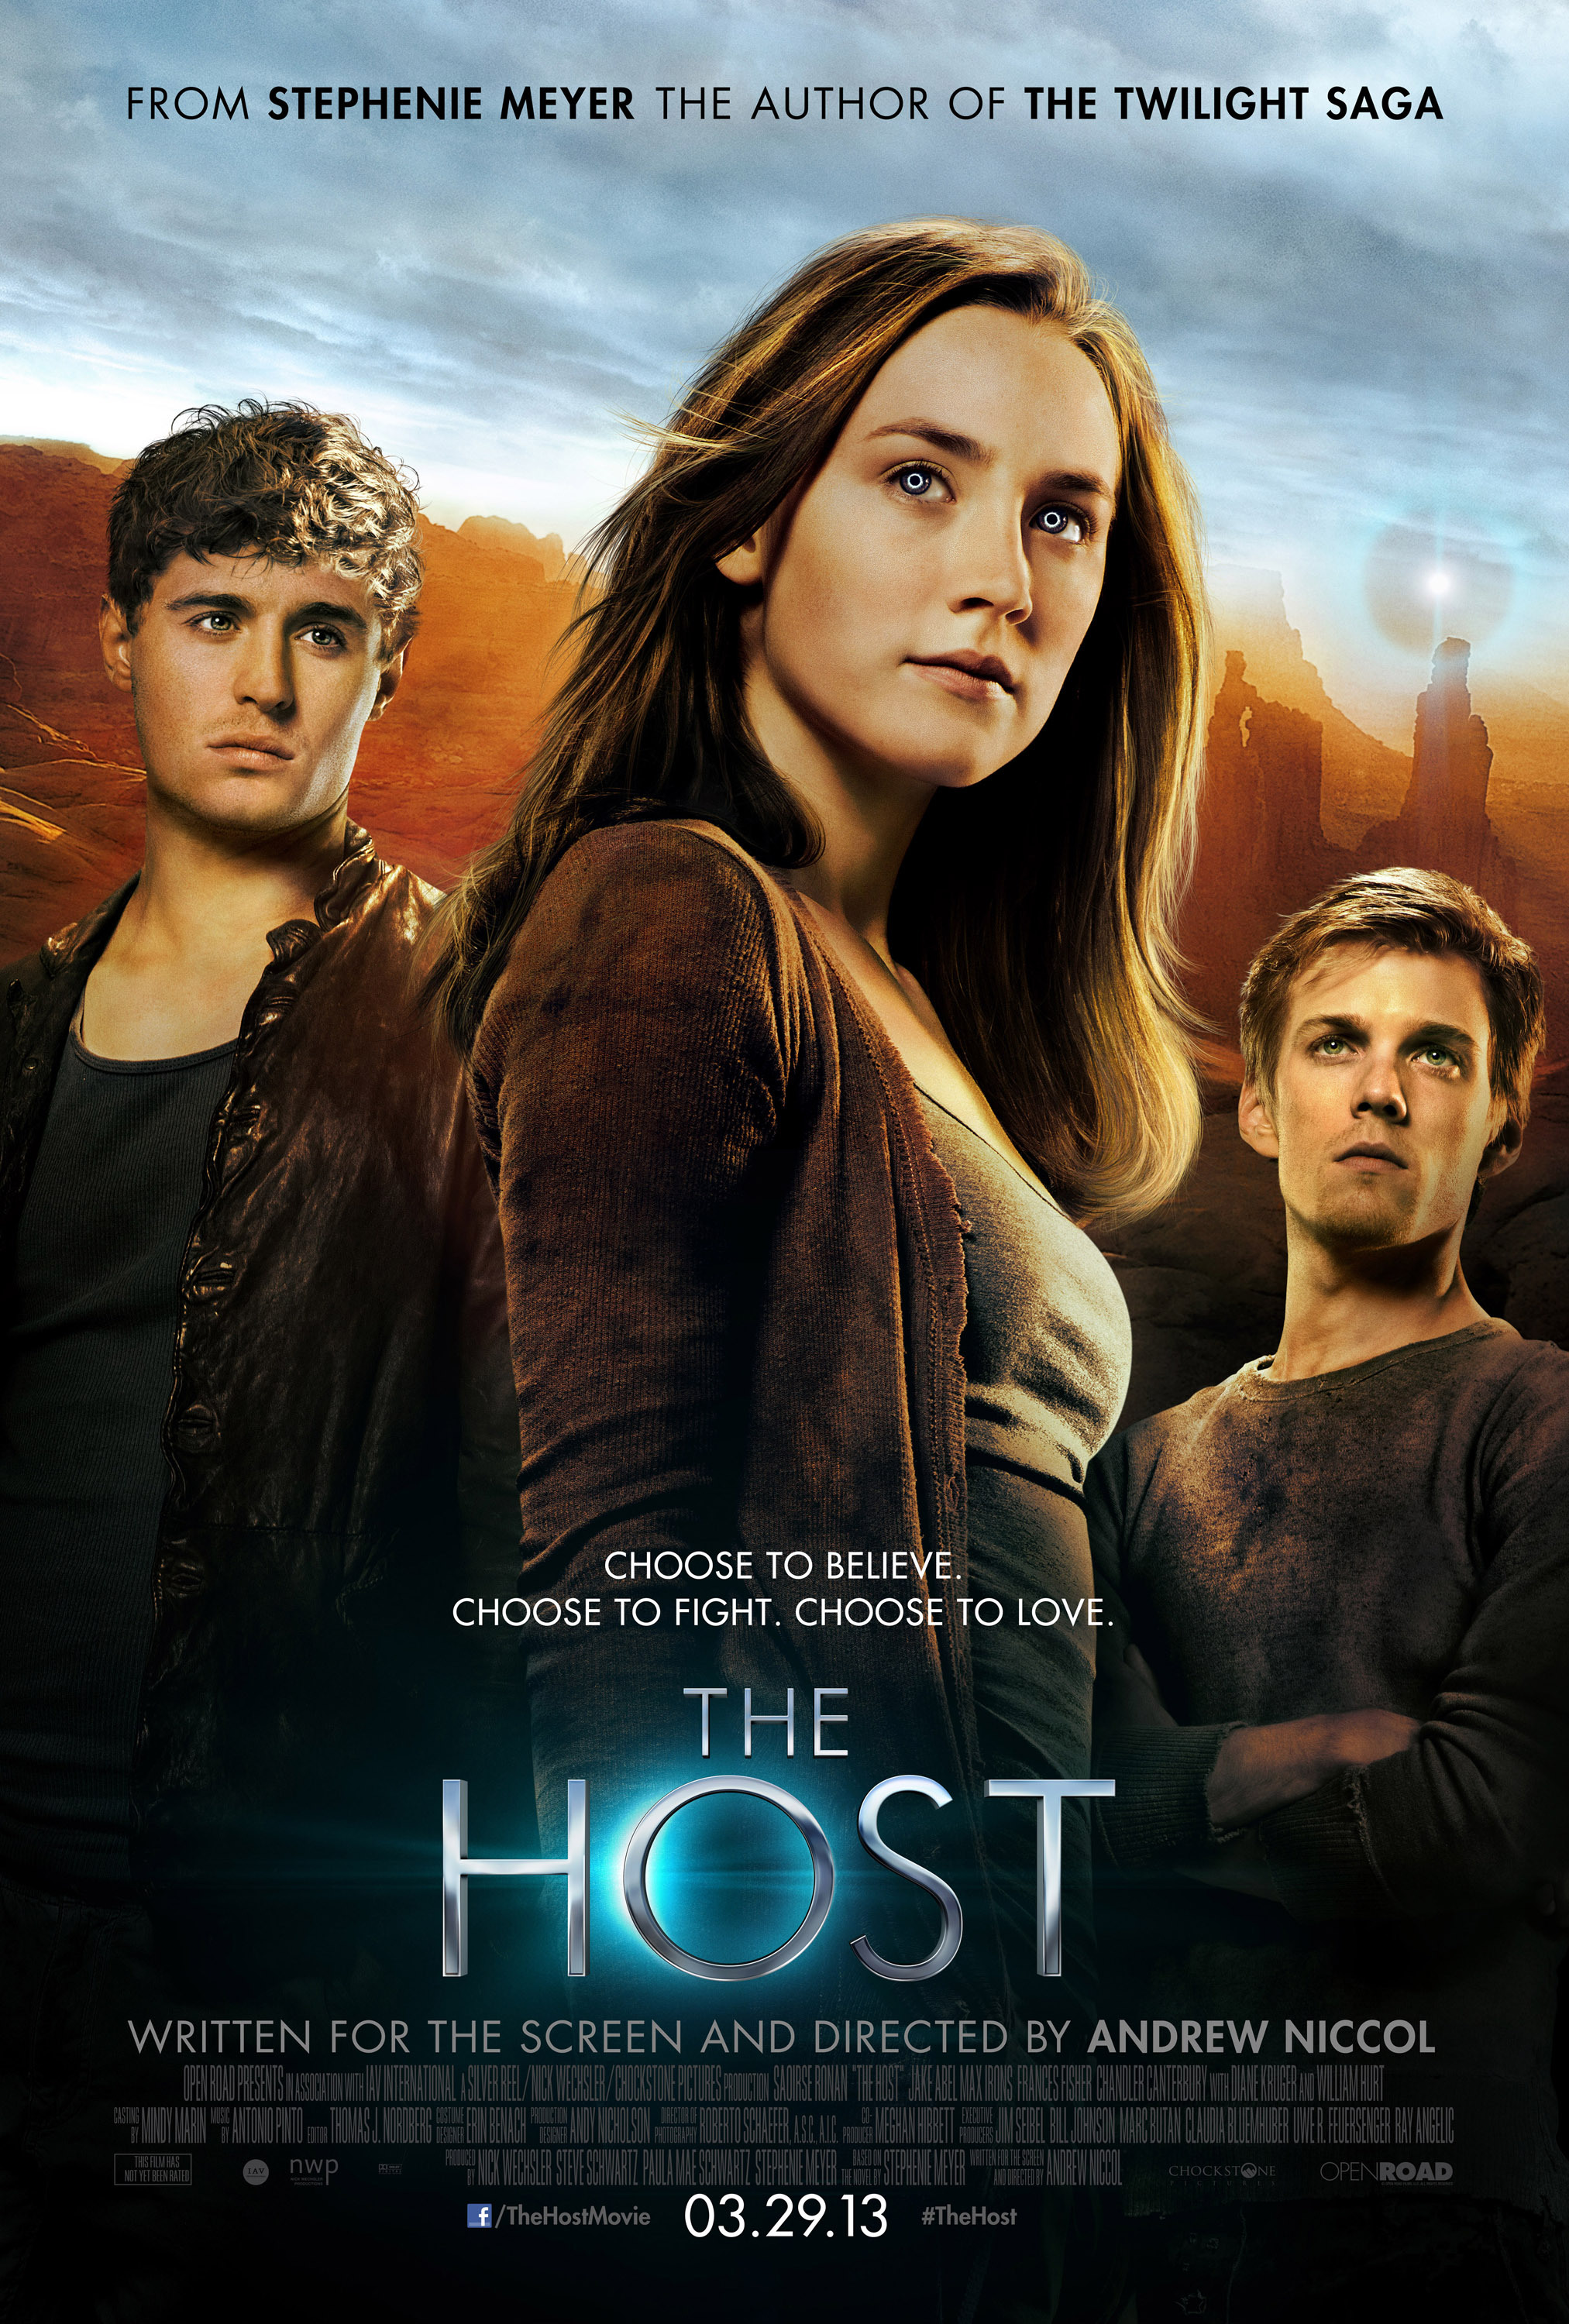 THE HOST New Trailer